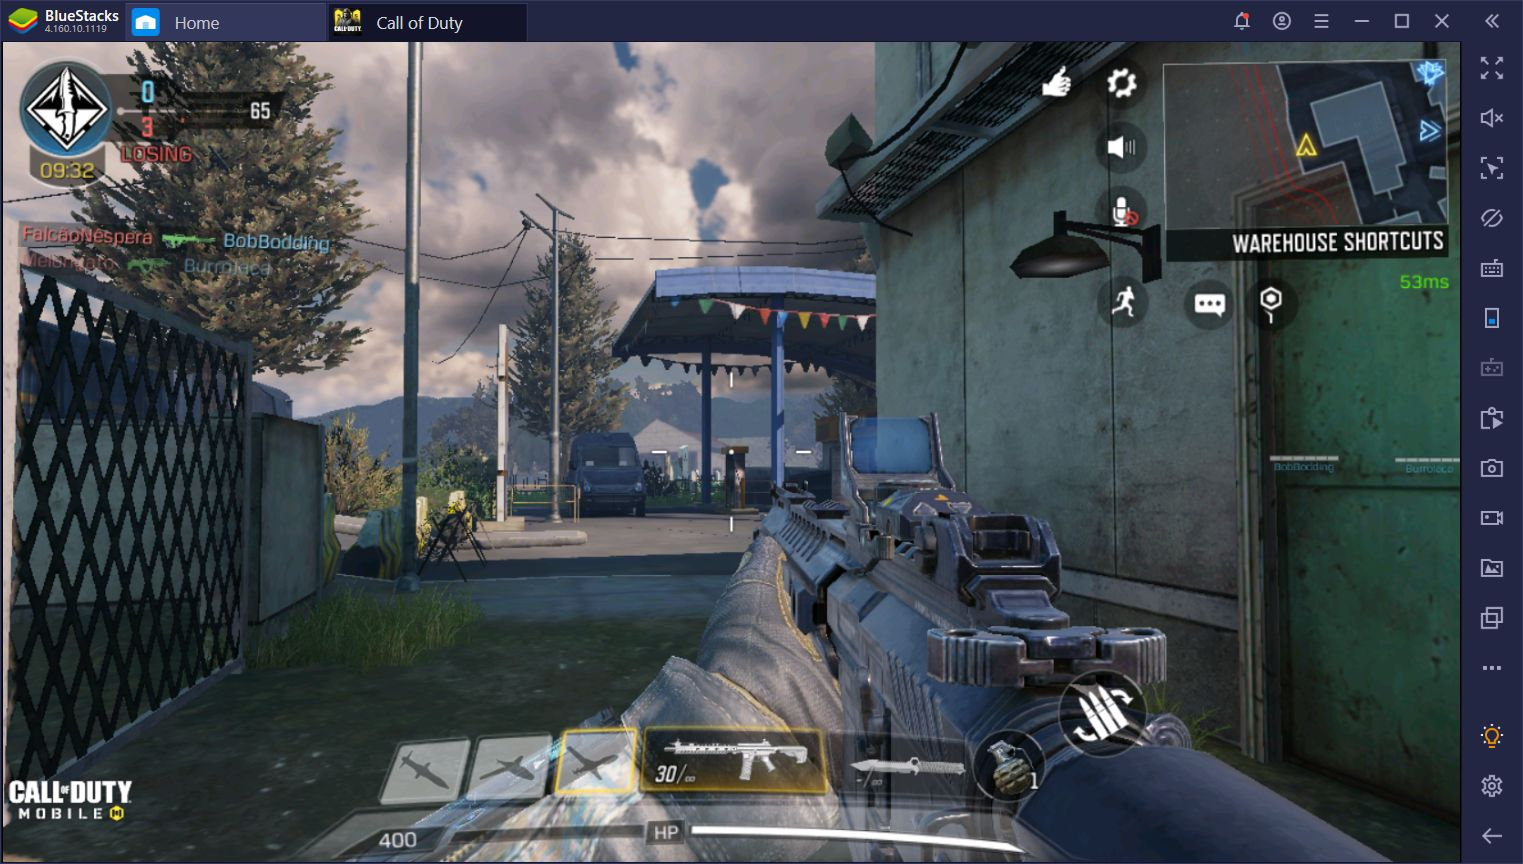 Call of Duty: Mobile Season 3 Update - Here's What's New